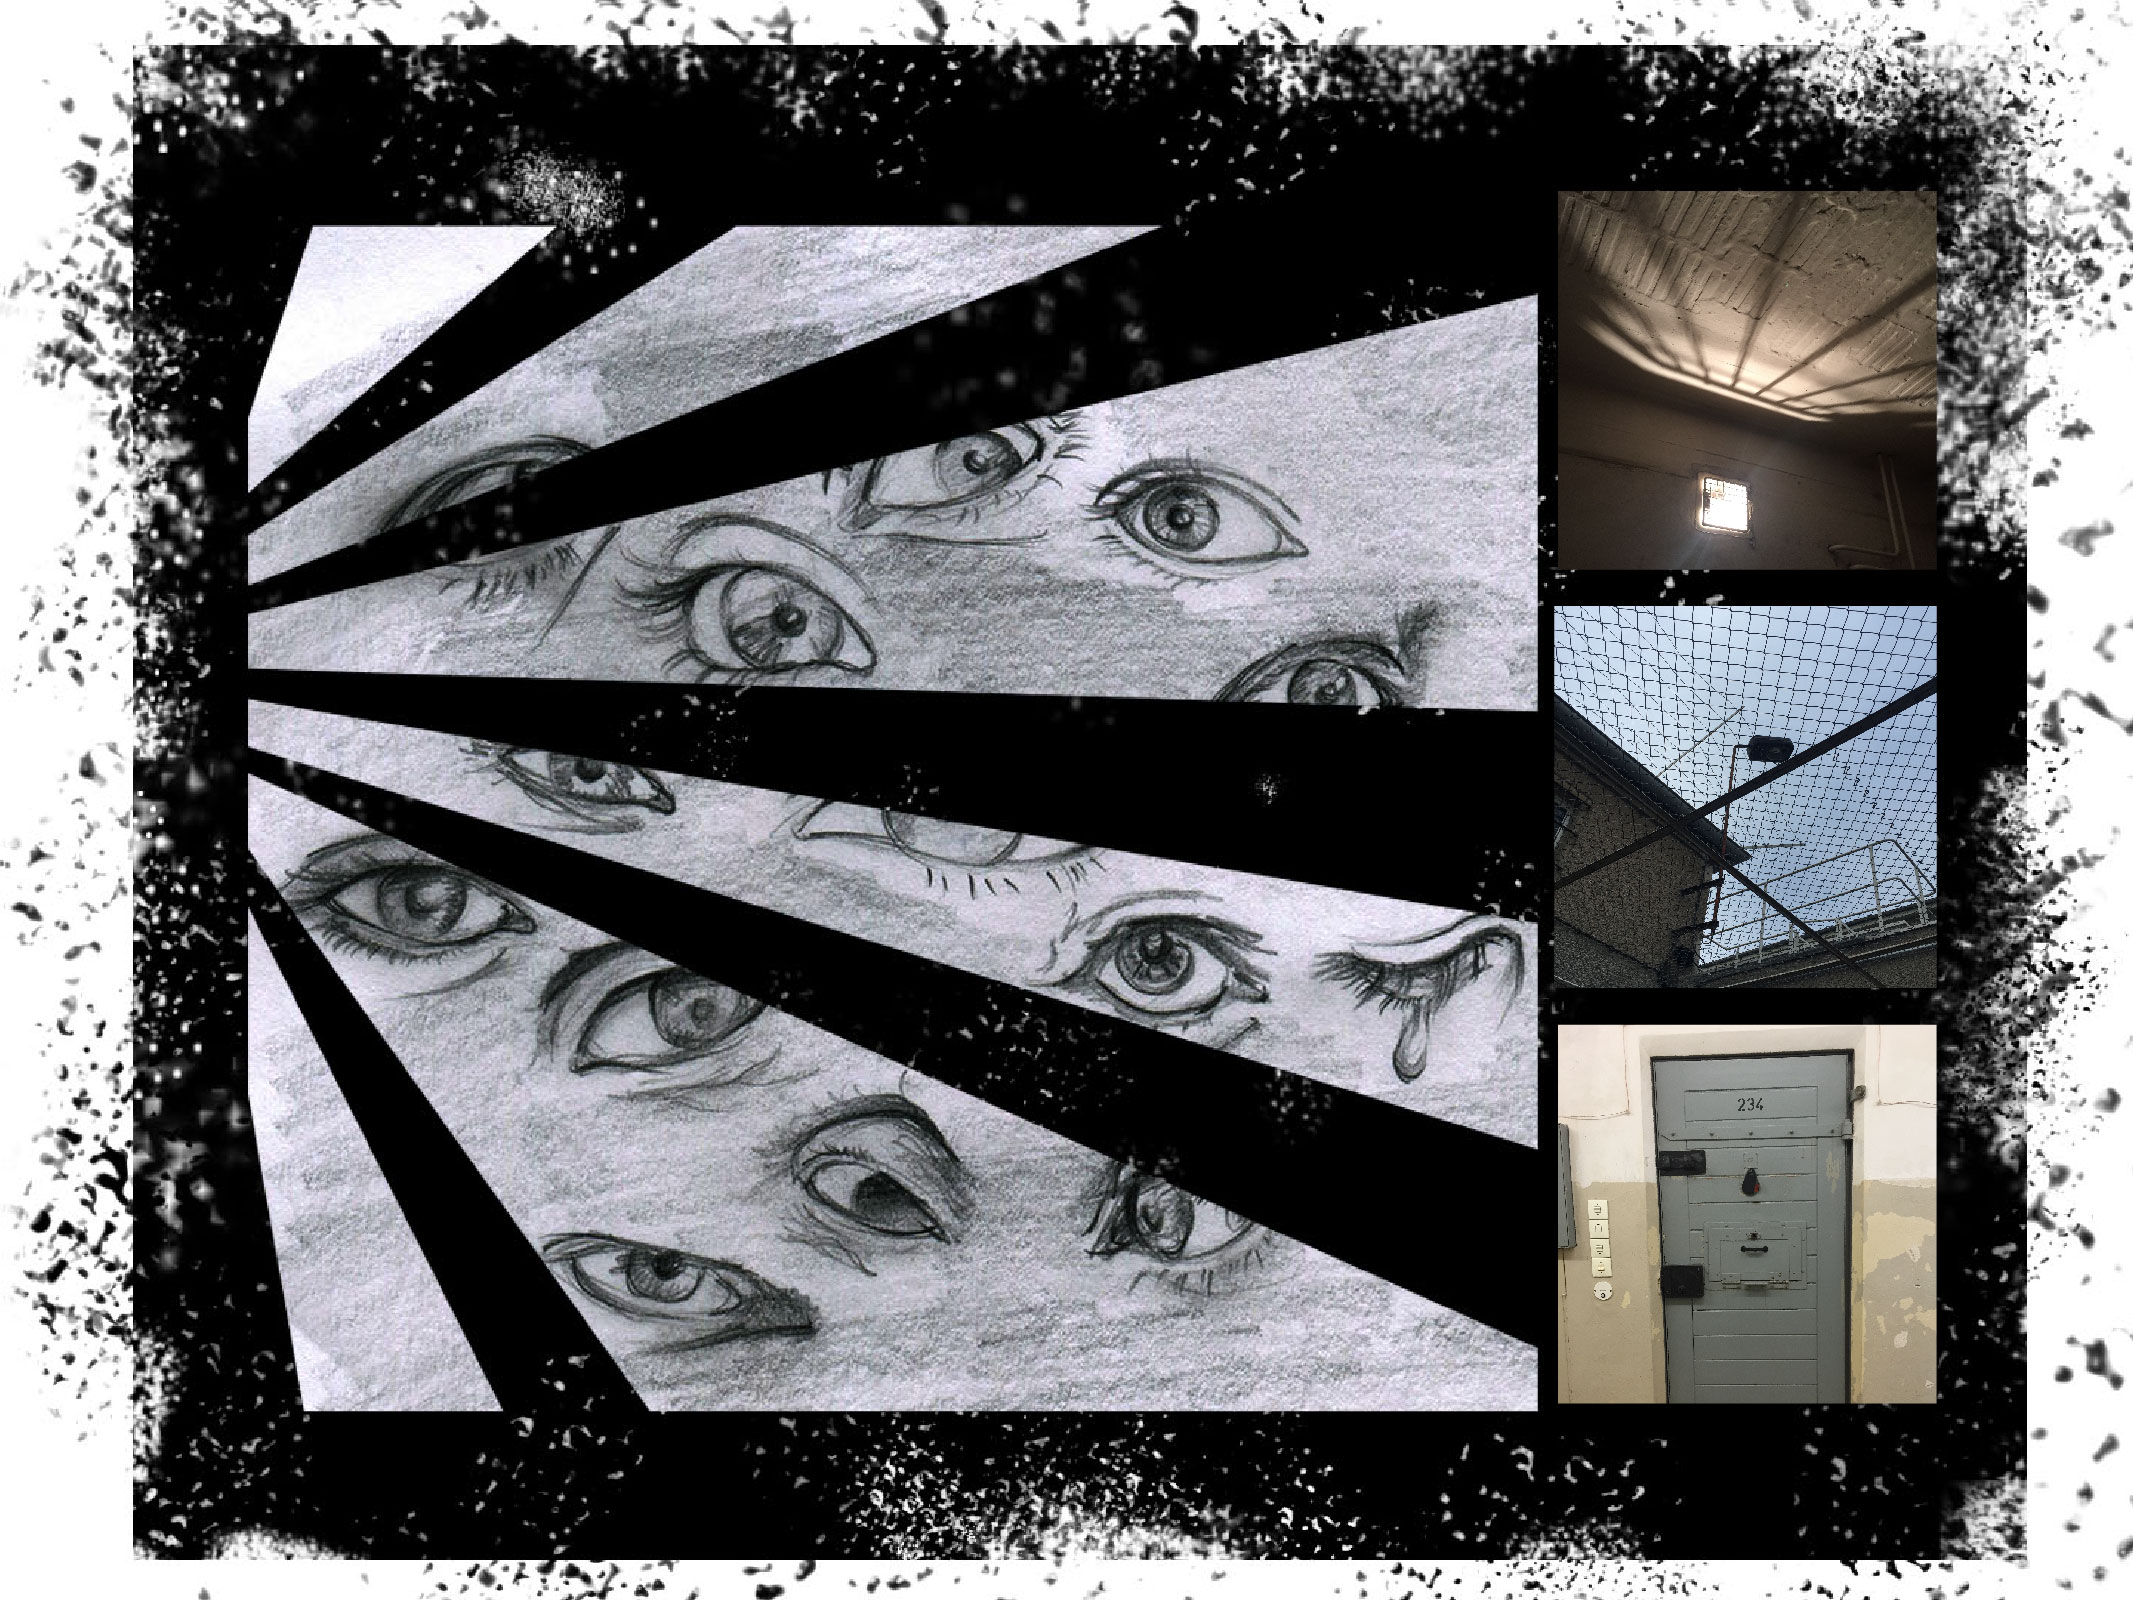 """Sep 23 Gedenkstätte Berlin-Hohenschönhausen Before going to this notorious prison, I watched the movie """"The lives of others"""" and that made me mentally immersed into this space more. The sketch was inspired by the lighting in the prison. Lots of eyes represent the the fear of prisoners, victims, suffered families as well as Nazi surveillance. Paradise Circus is the song I would listen over and over again when I feel depressed."""